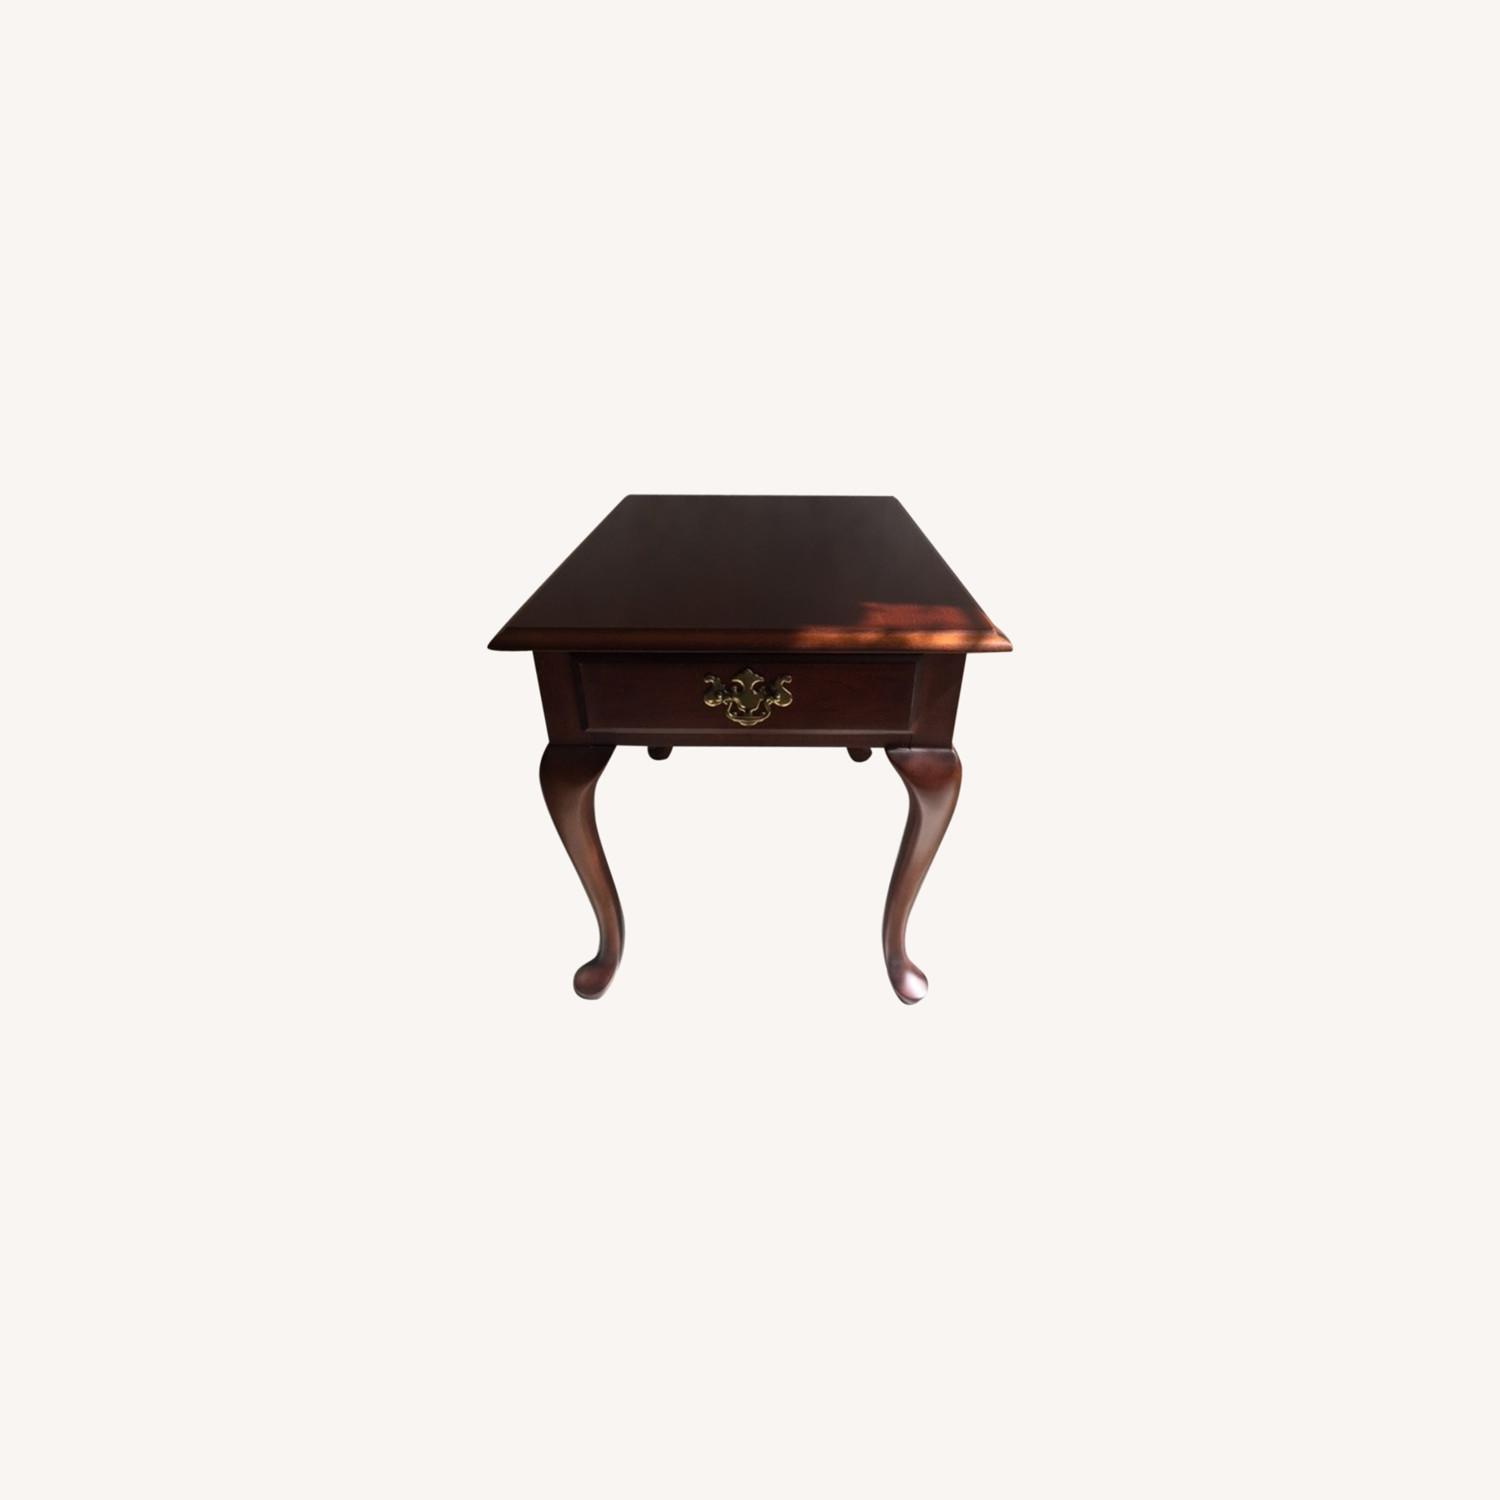 Thomasville Winston Court End Tables (2) - image-0